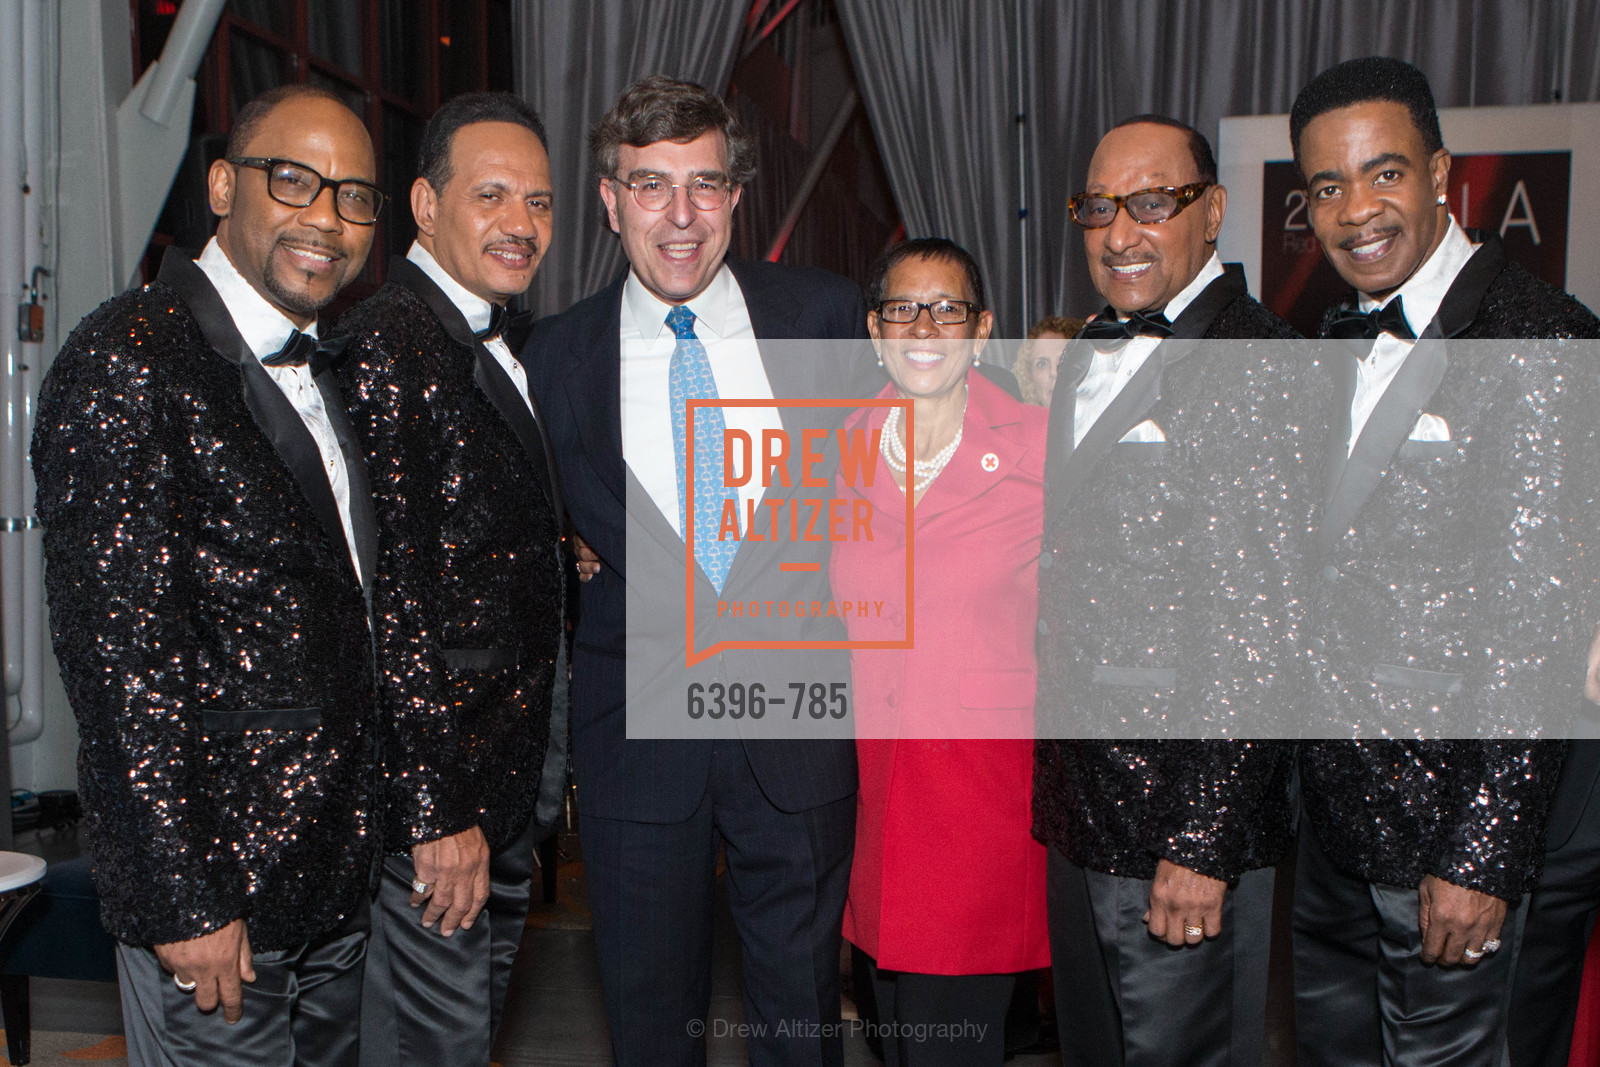 Lawrence Payton, Ronnie McNair, Neal Litvack, Donna Duay, Duke Fakir, Spike Bonhart, 2015 RED CROSS Gala, US, April 12th, 2015,Drew Altizer, Drew Altizer Photography, full-service agency, private events, San Francisco photographer, photographer california